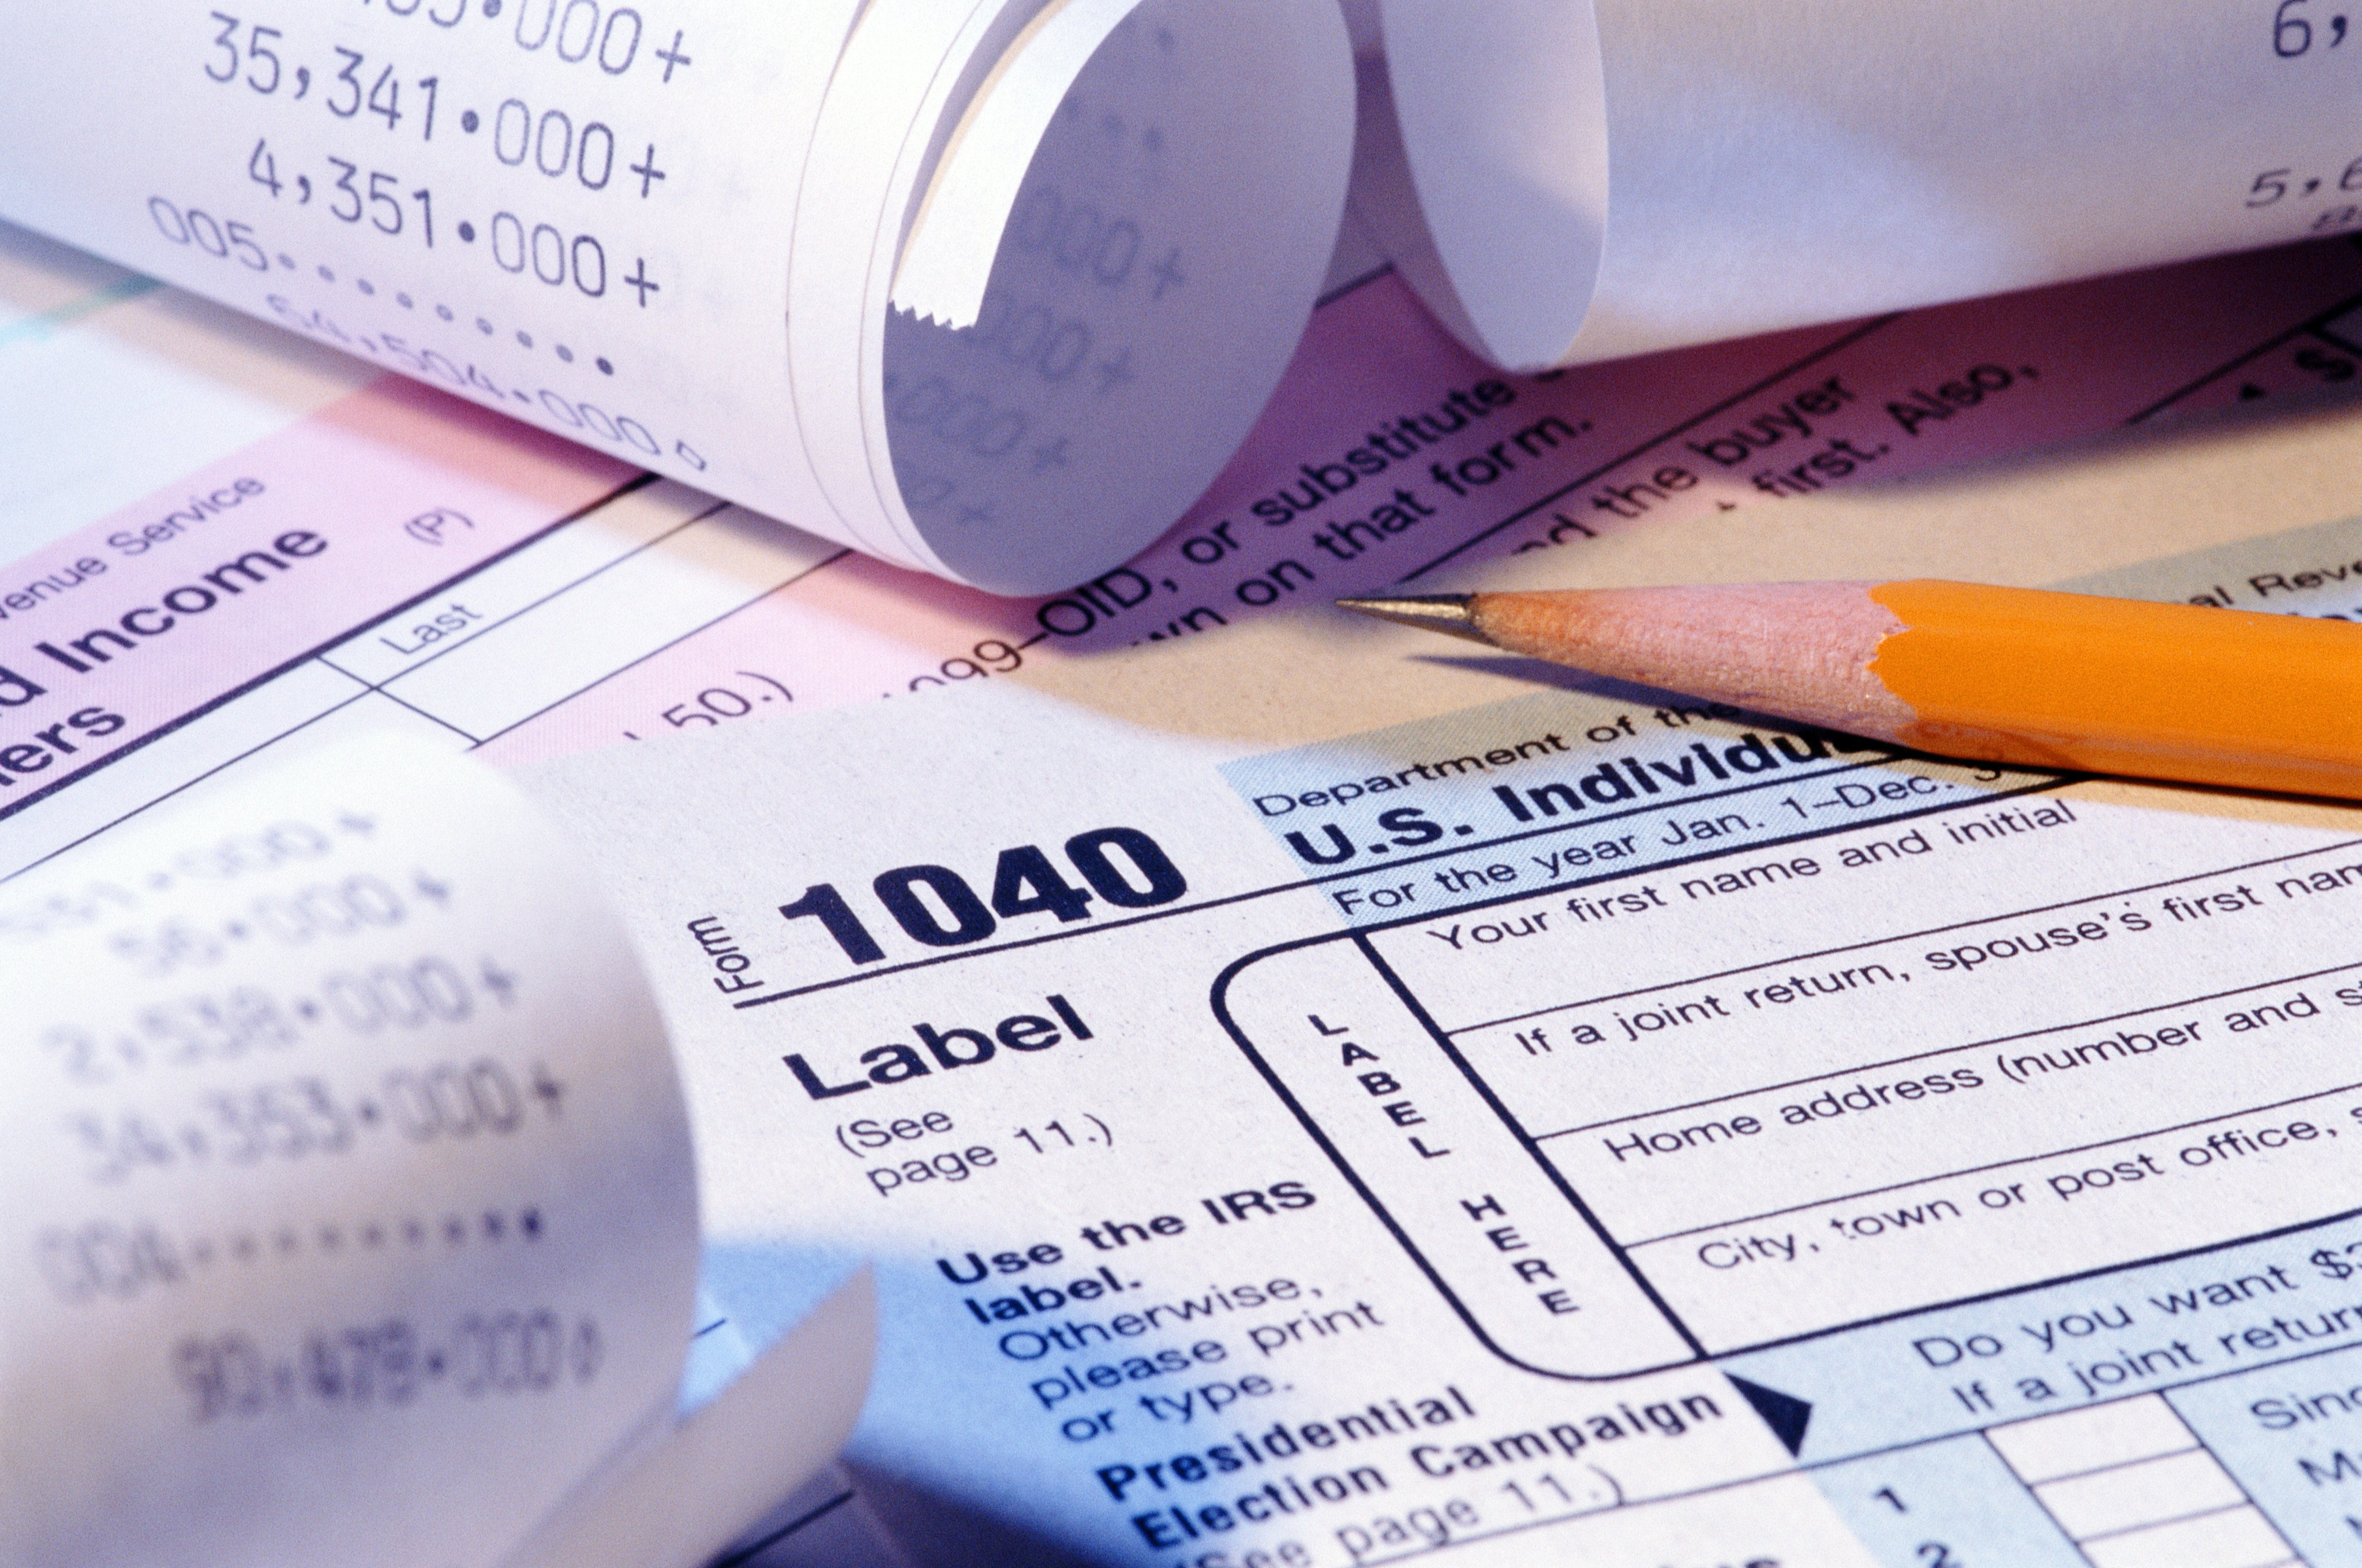 Irs Tax form 1040 for 2018